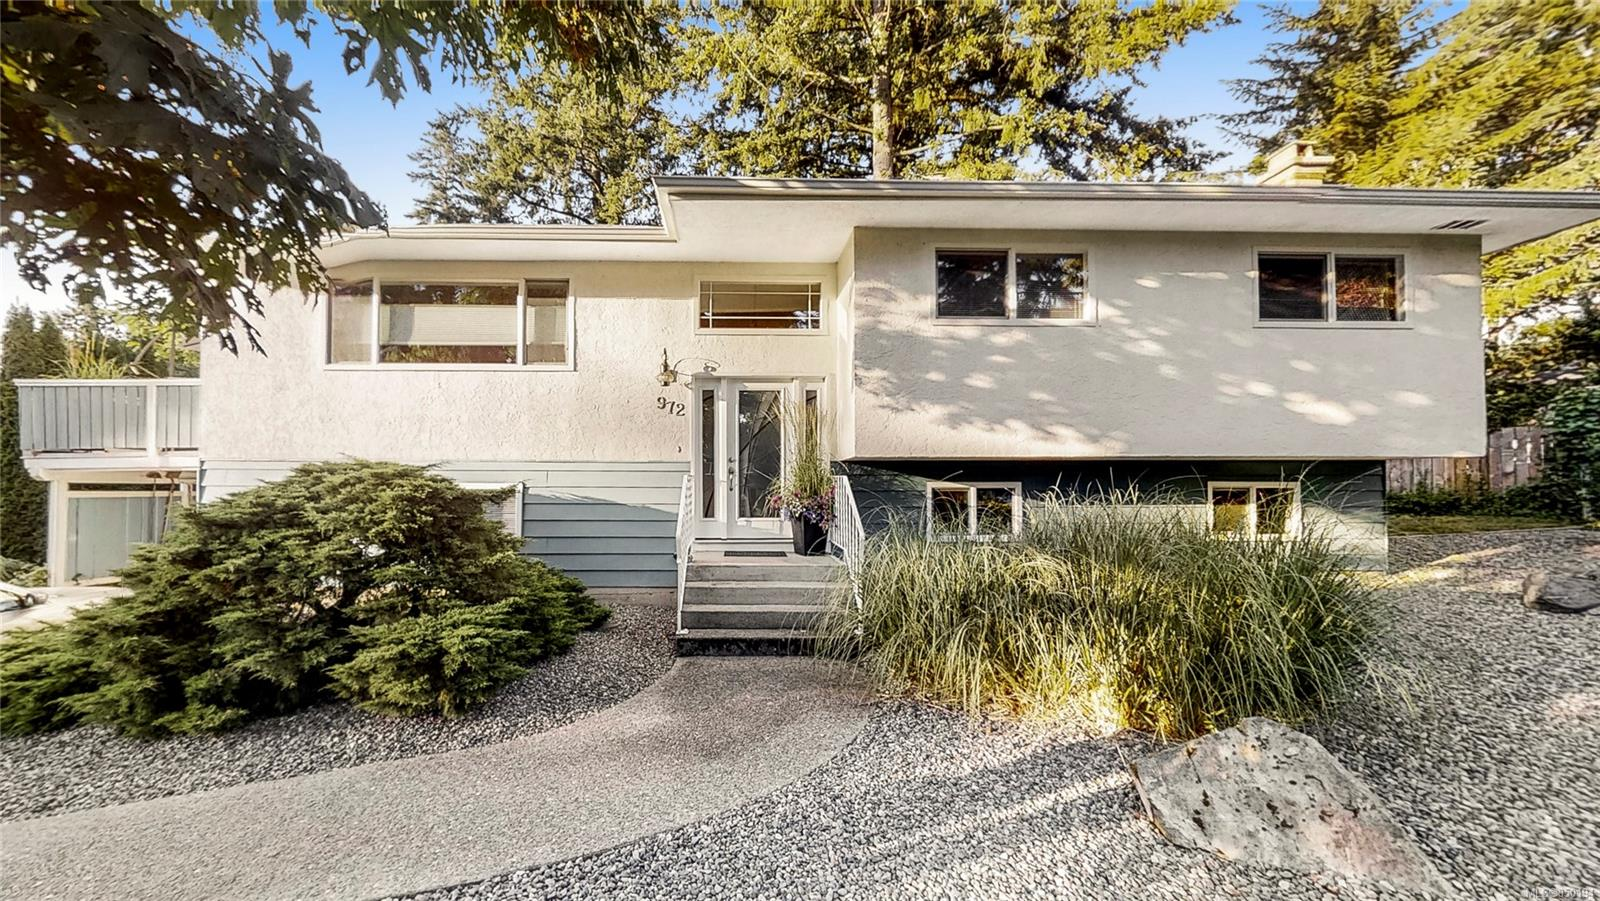 A/O in place S/R Aug 10th. Great opportunity to get into the market with this south facing 4 bed 3 bath 2232 sq. ft. home on a 8057 sqft lot on a quiet cul-de-sac in desirable Brentwood Bay.  Walking distance to pier and marina.  This split level well-maintained home is perfect for a family or investors with suite potential. 2014 roof, vinyl windows, heat pump.  Cozy living room with wood fireplace, kitchen with skylight and dining area which leads out to an attractive vinyl sundeck overlooking the private backyard.Master bedroom includes 2pc ensuite, two more bedrooms and a 4pc bath complete the main living area. Downstairs there is a fourth bedroom, den & rec room with wood stove, 2 pc bathroom, laundry/storage and access to carport.